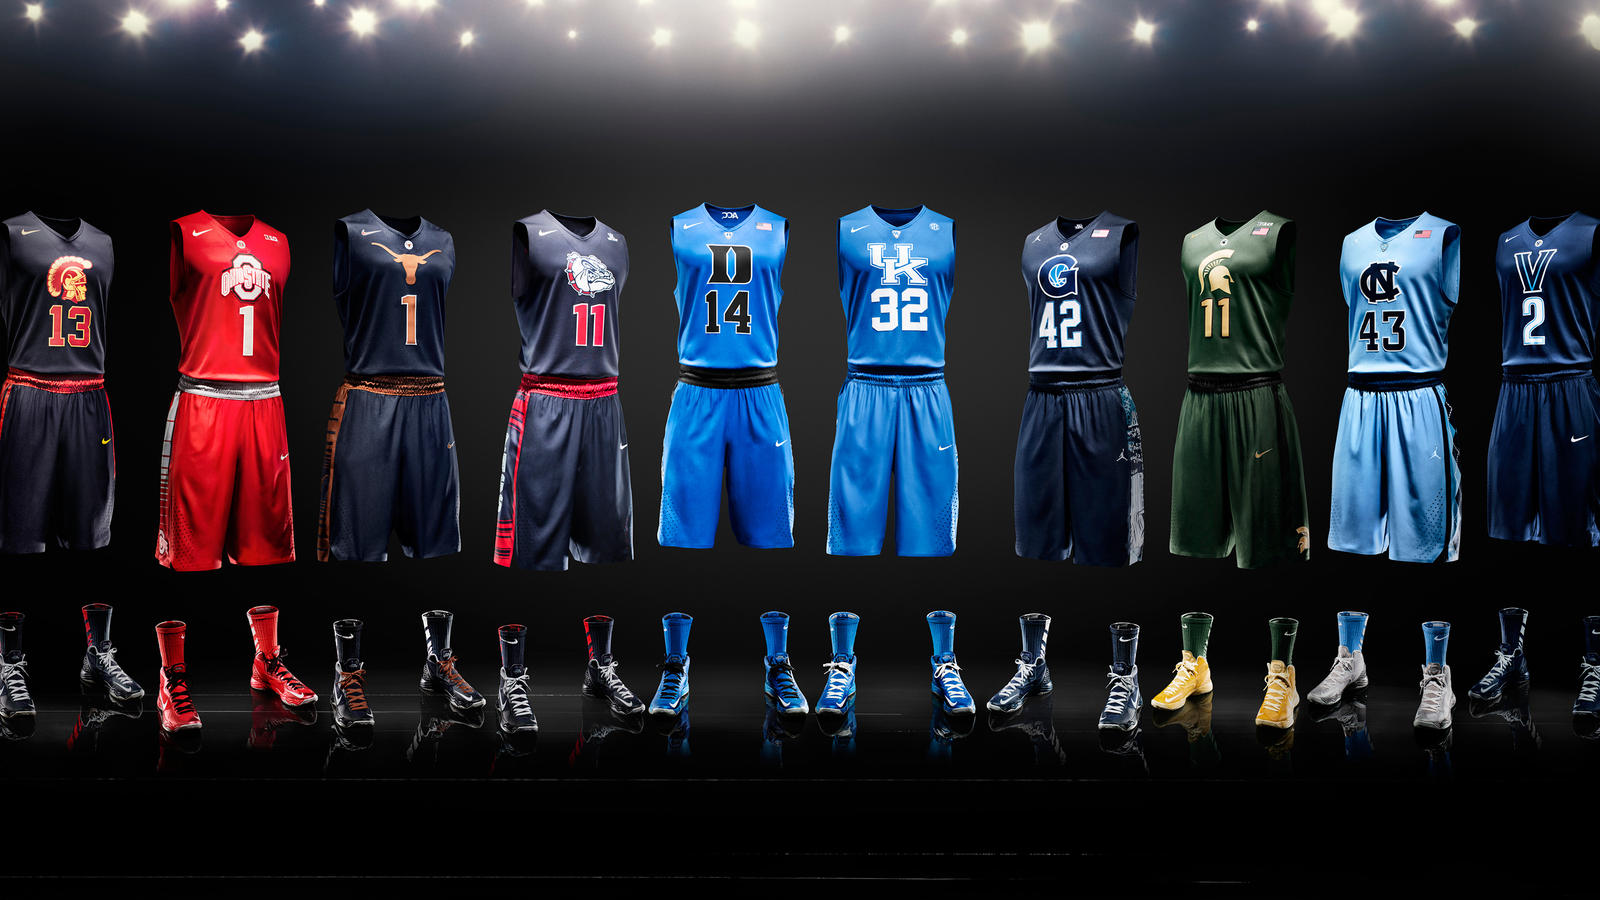 SP13_BB_MarchMadness_UNI_Group_Shot_hd_1